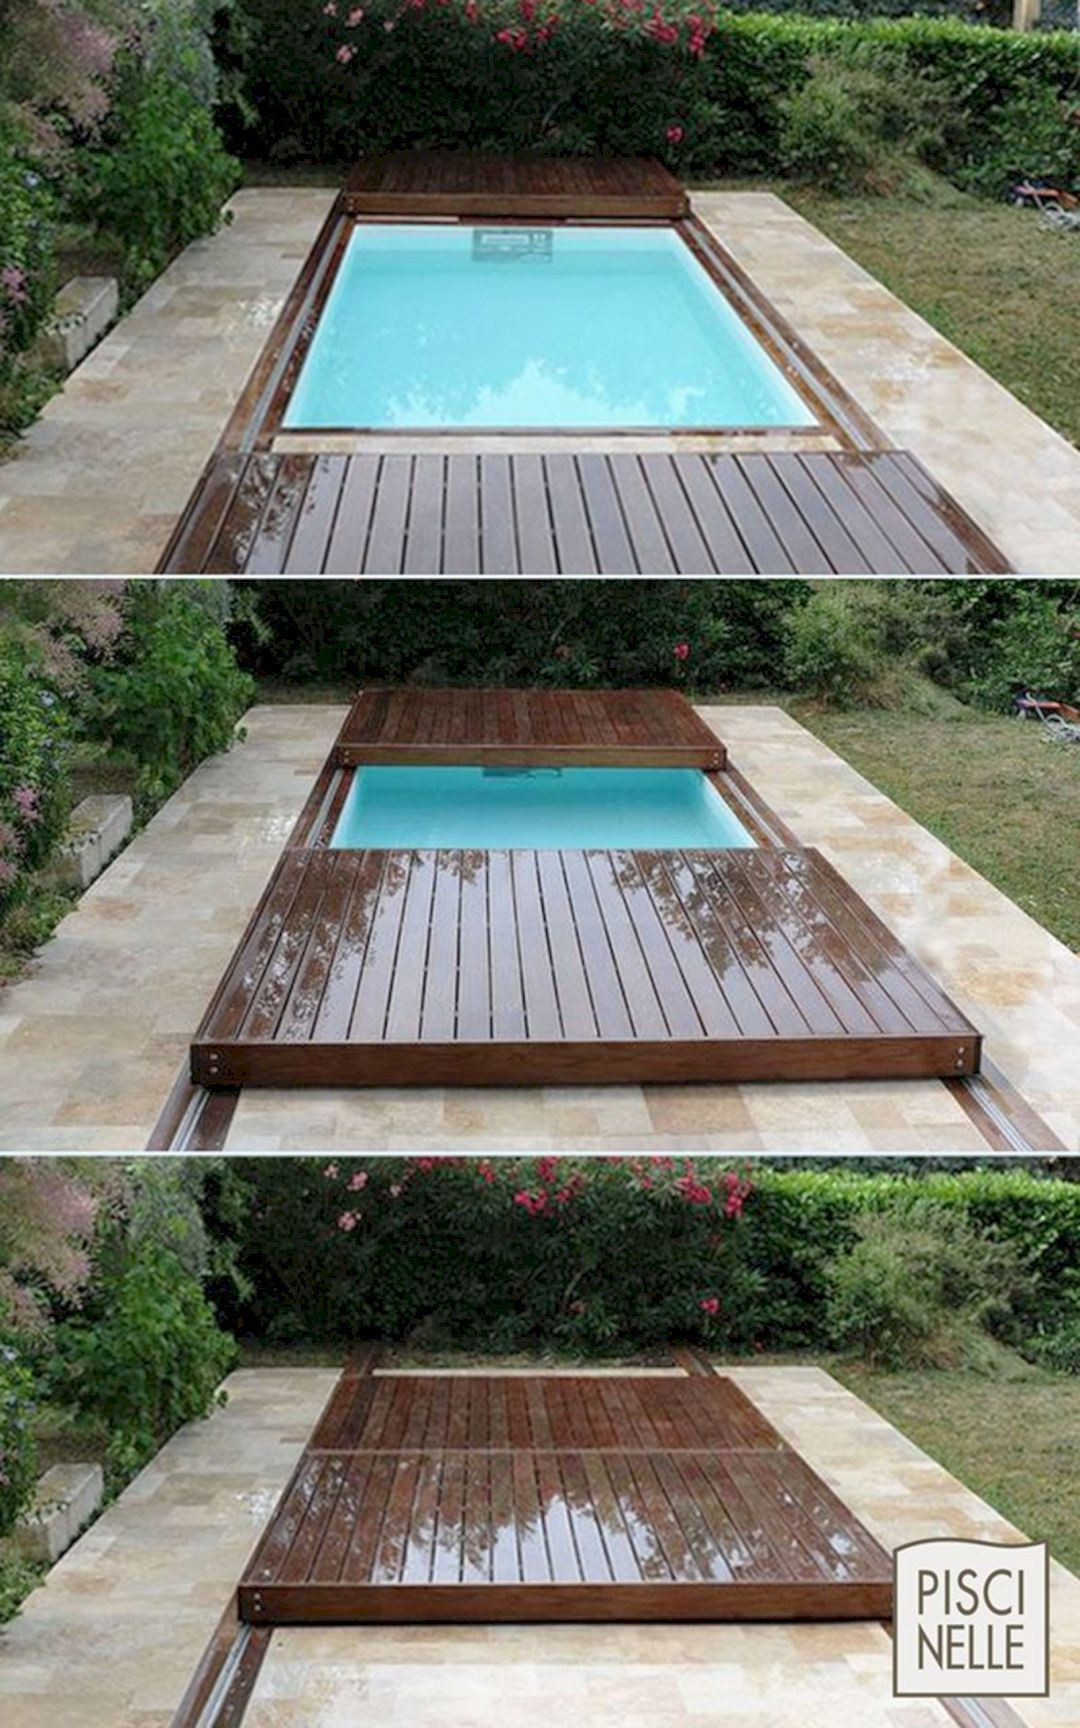 Jacuzzi Pool Ideas Coolest Small Pool Ideas With 9 Basic Preparation Tips